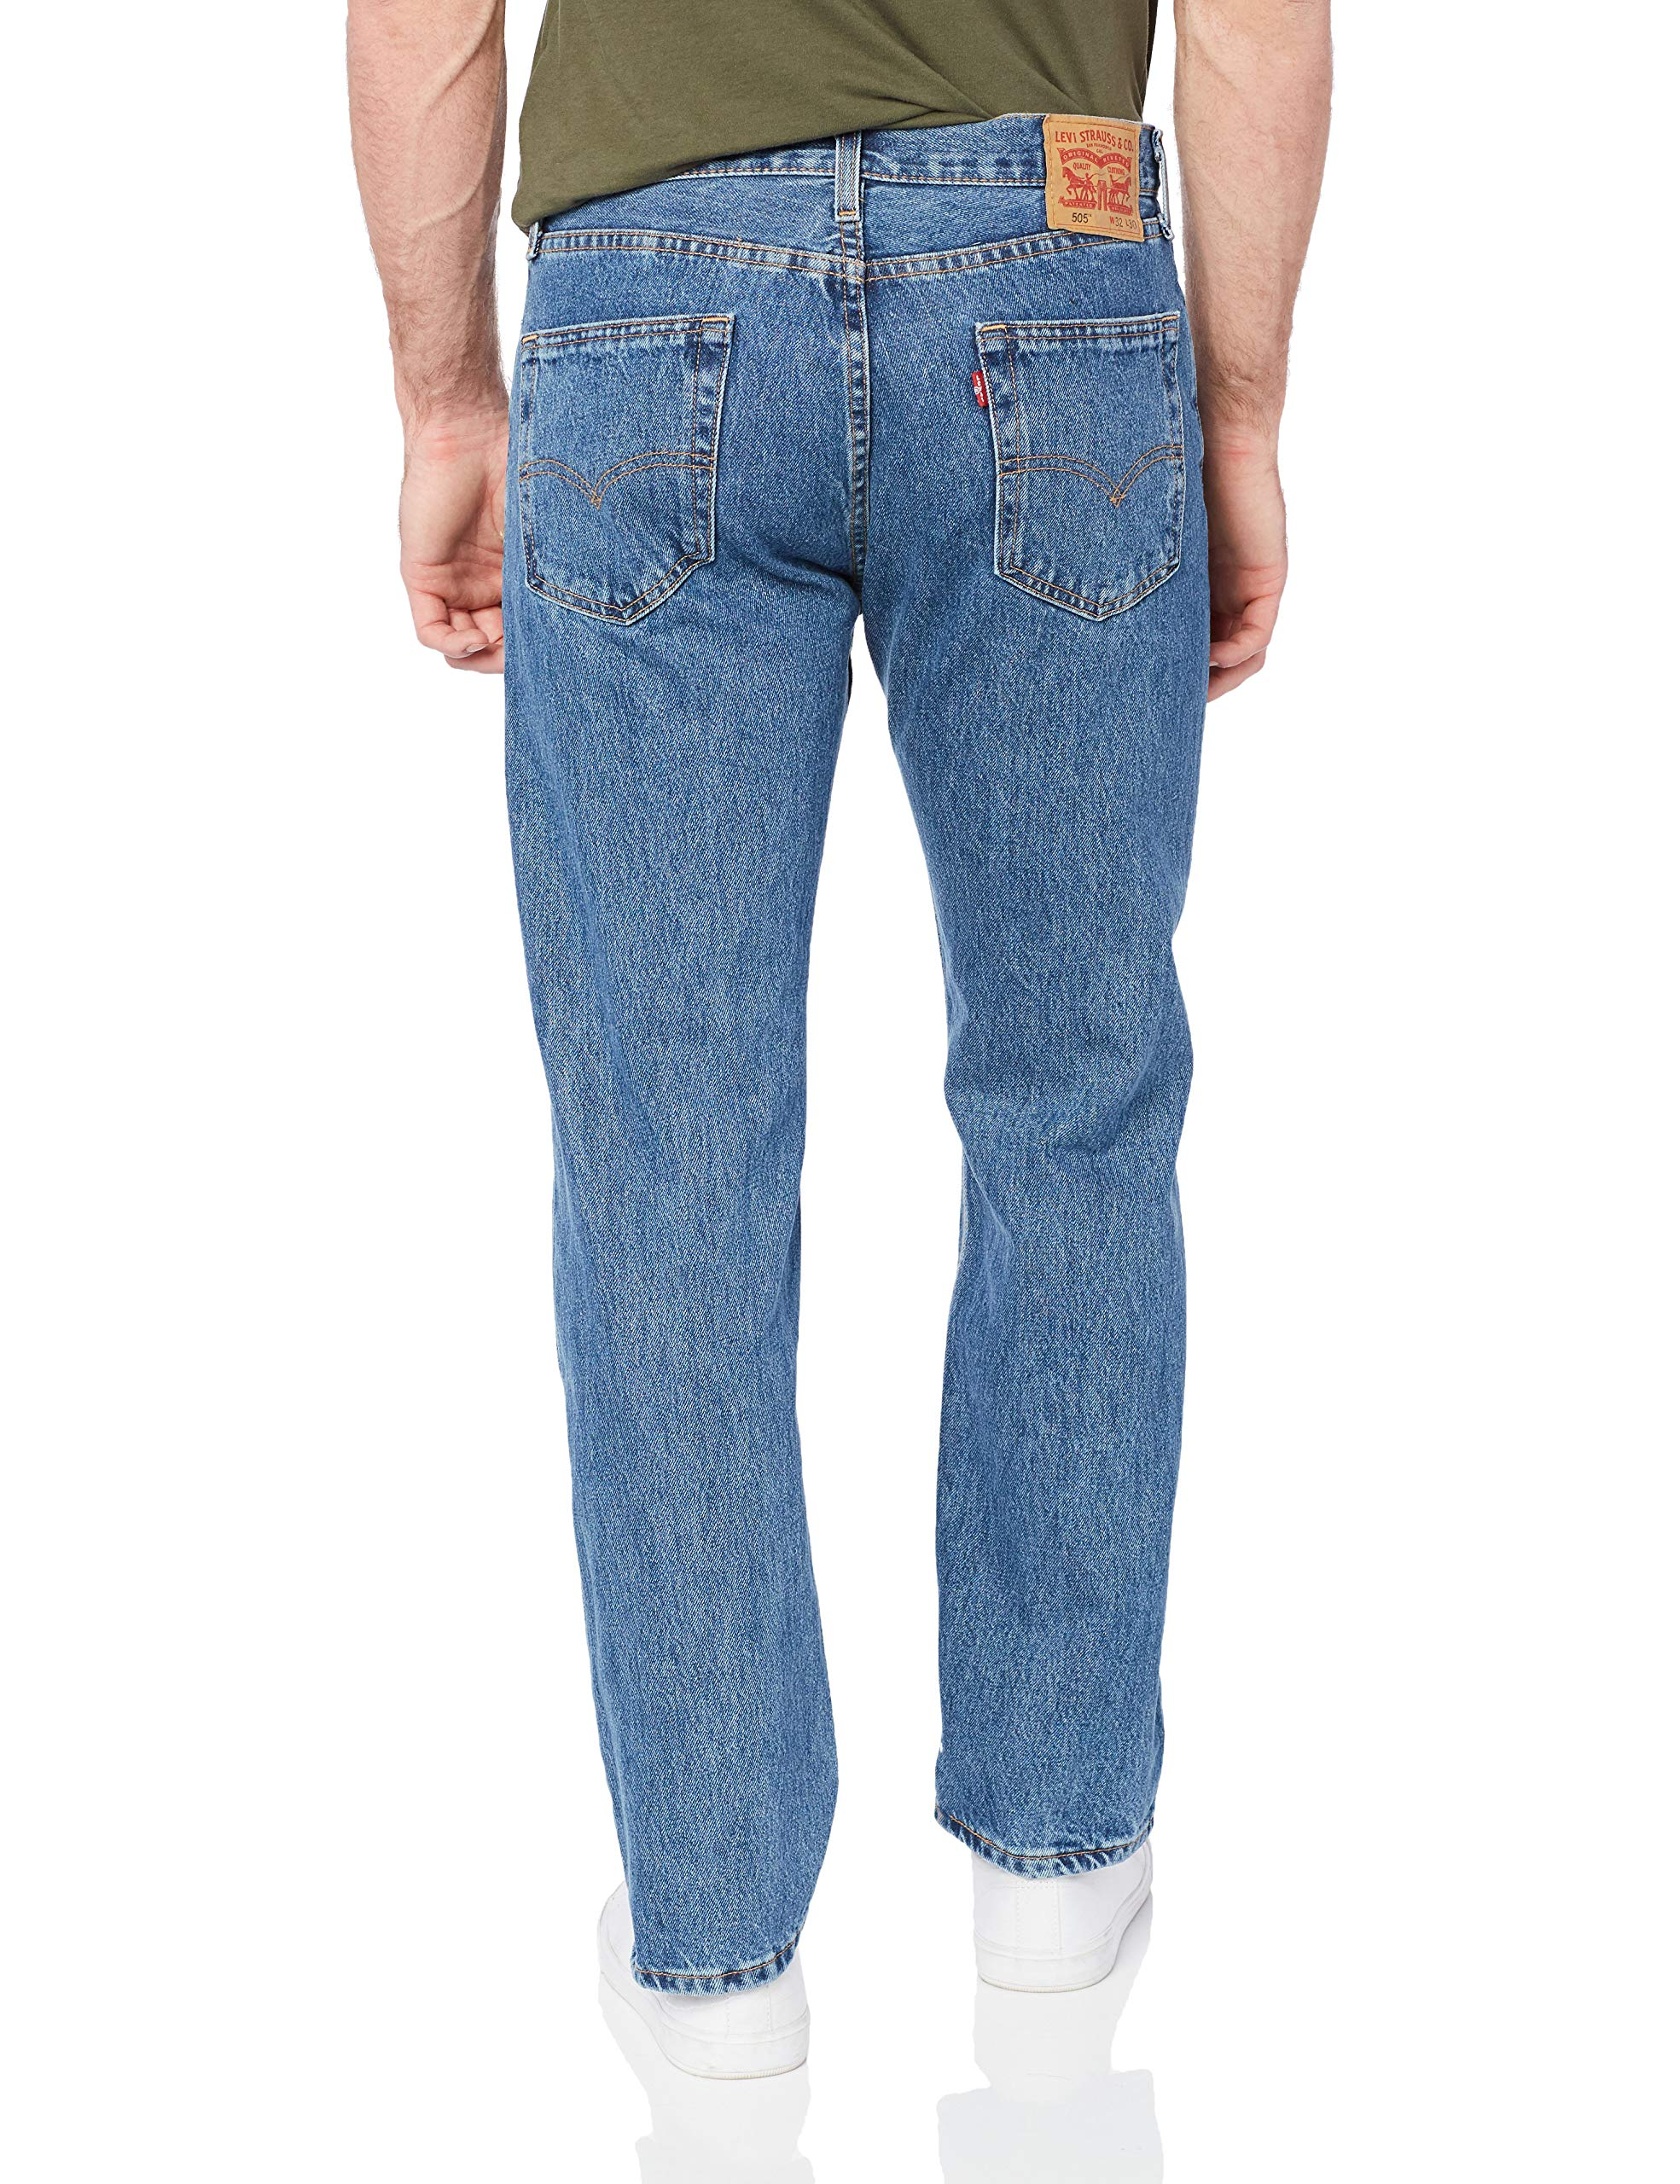 Levi's Men's 505 Regular Fit-Jeans